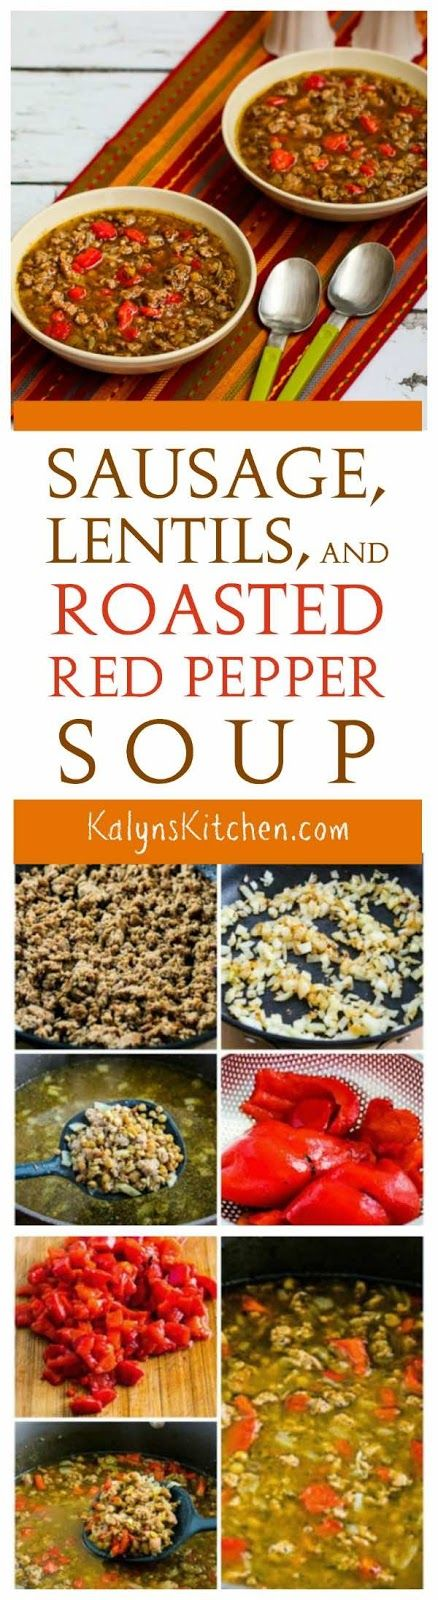 ... images about soup on Pinterest | Vegetables, Wild rice soup and Soups